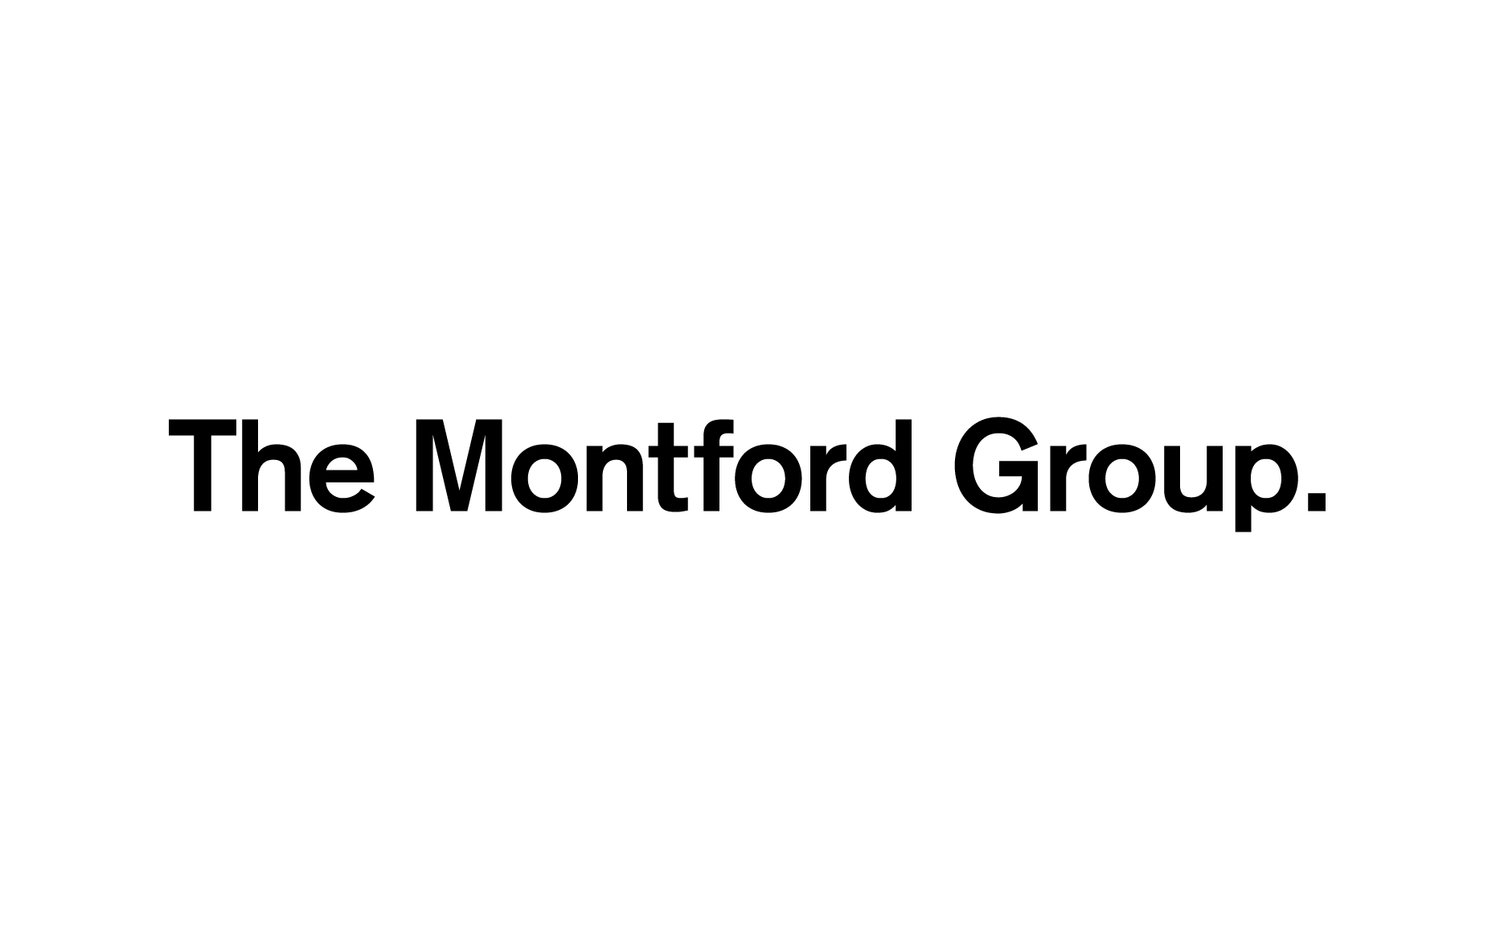 The Montford Group